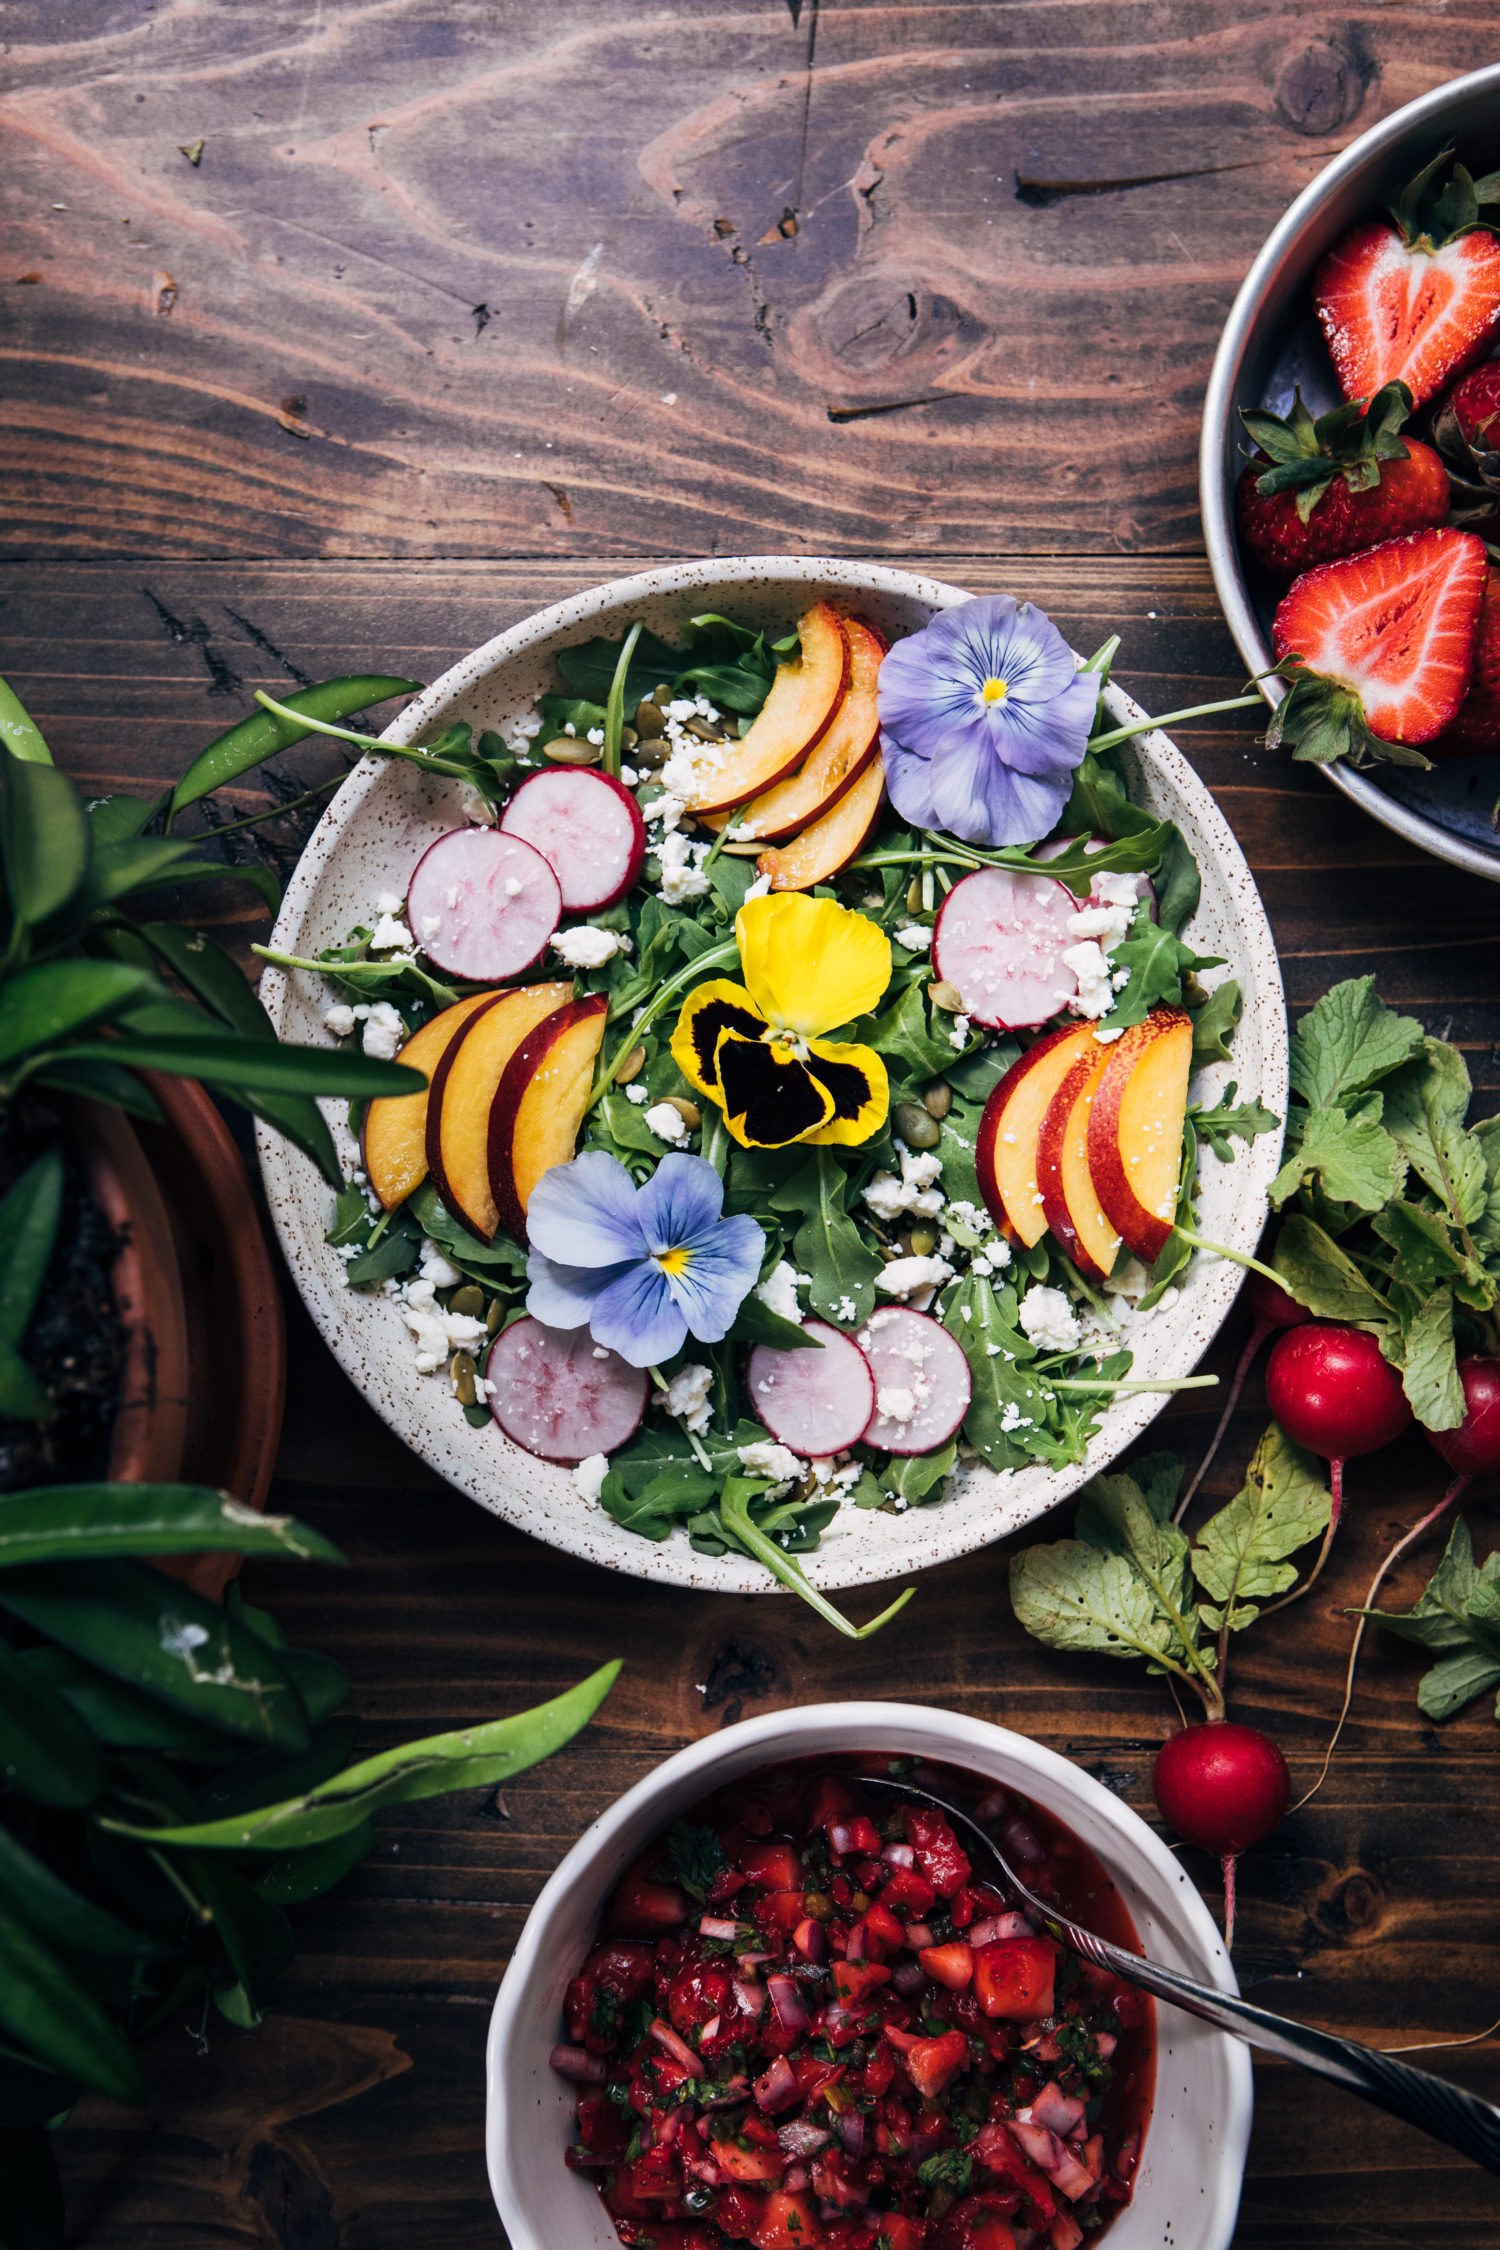 8 Small Gardens That Will Inspire You In Any Season: Flower Garden Salad